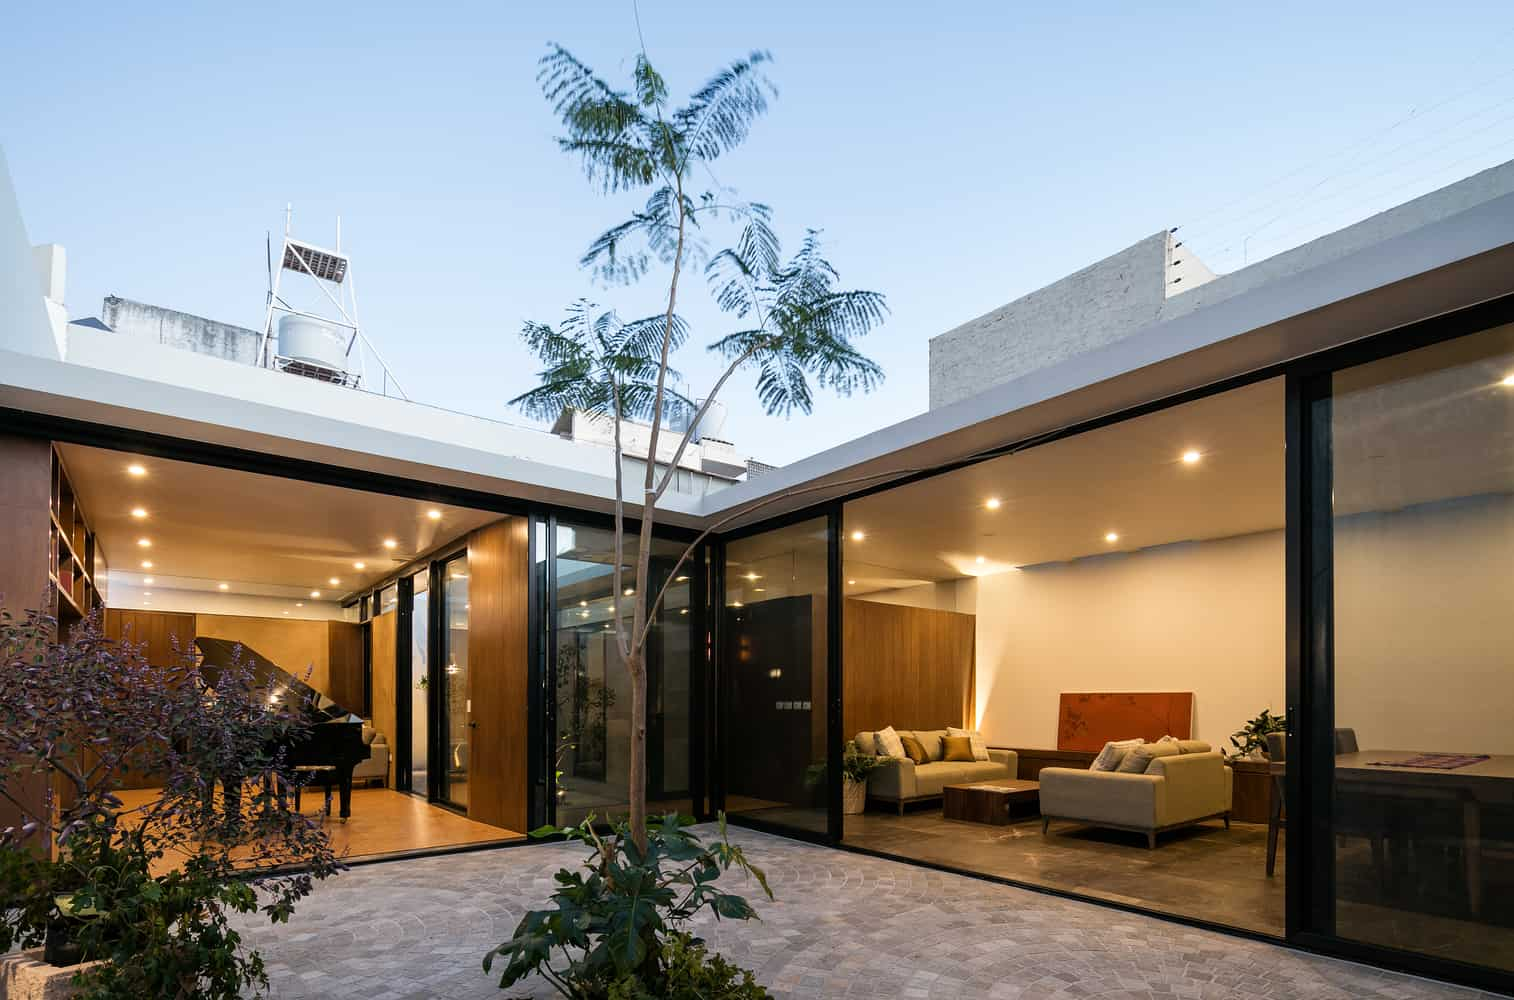 A House Full of Natural Light and Music